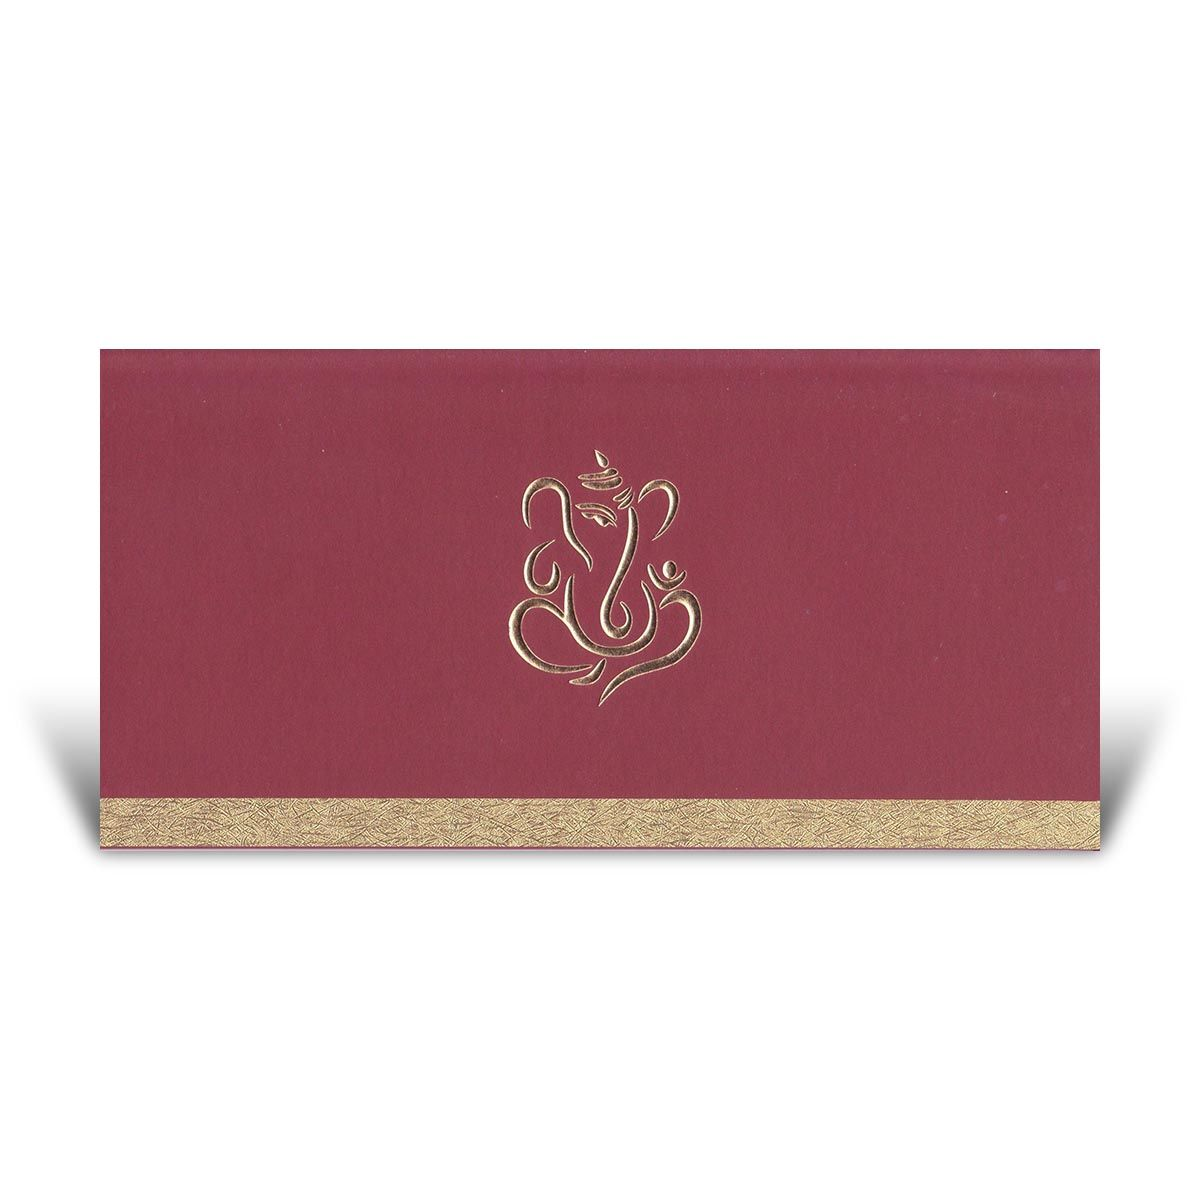 A Simple Yet Elegant Hindu Wedding Card This Features Ganesh In The Centre And Rustic Effect Gold Strip Across Bottom